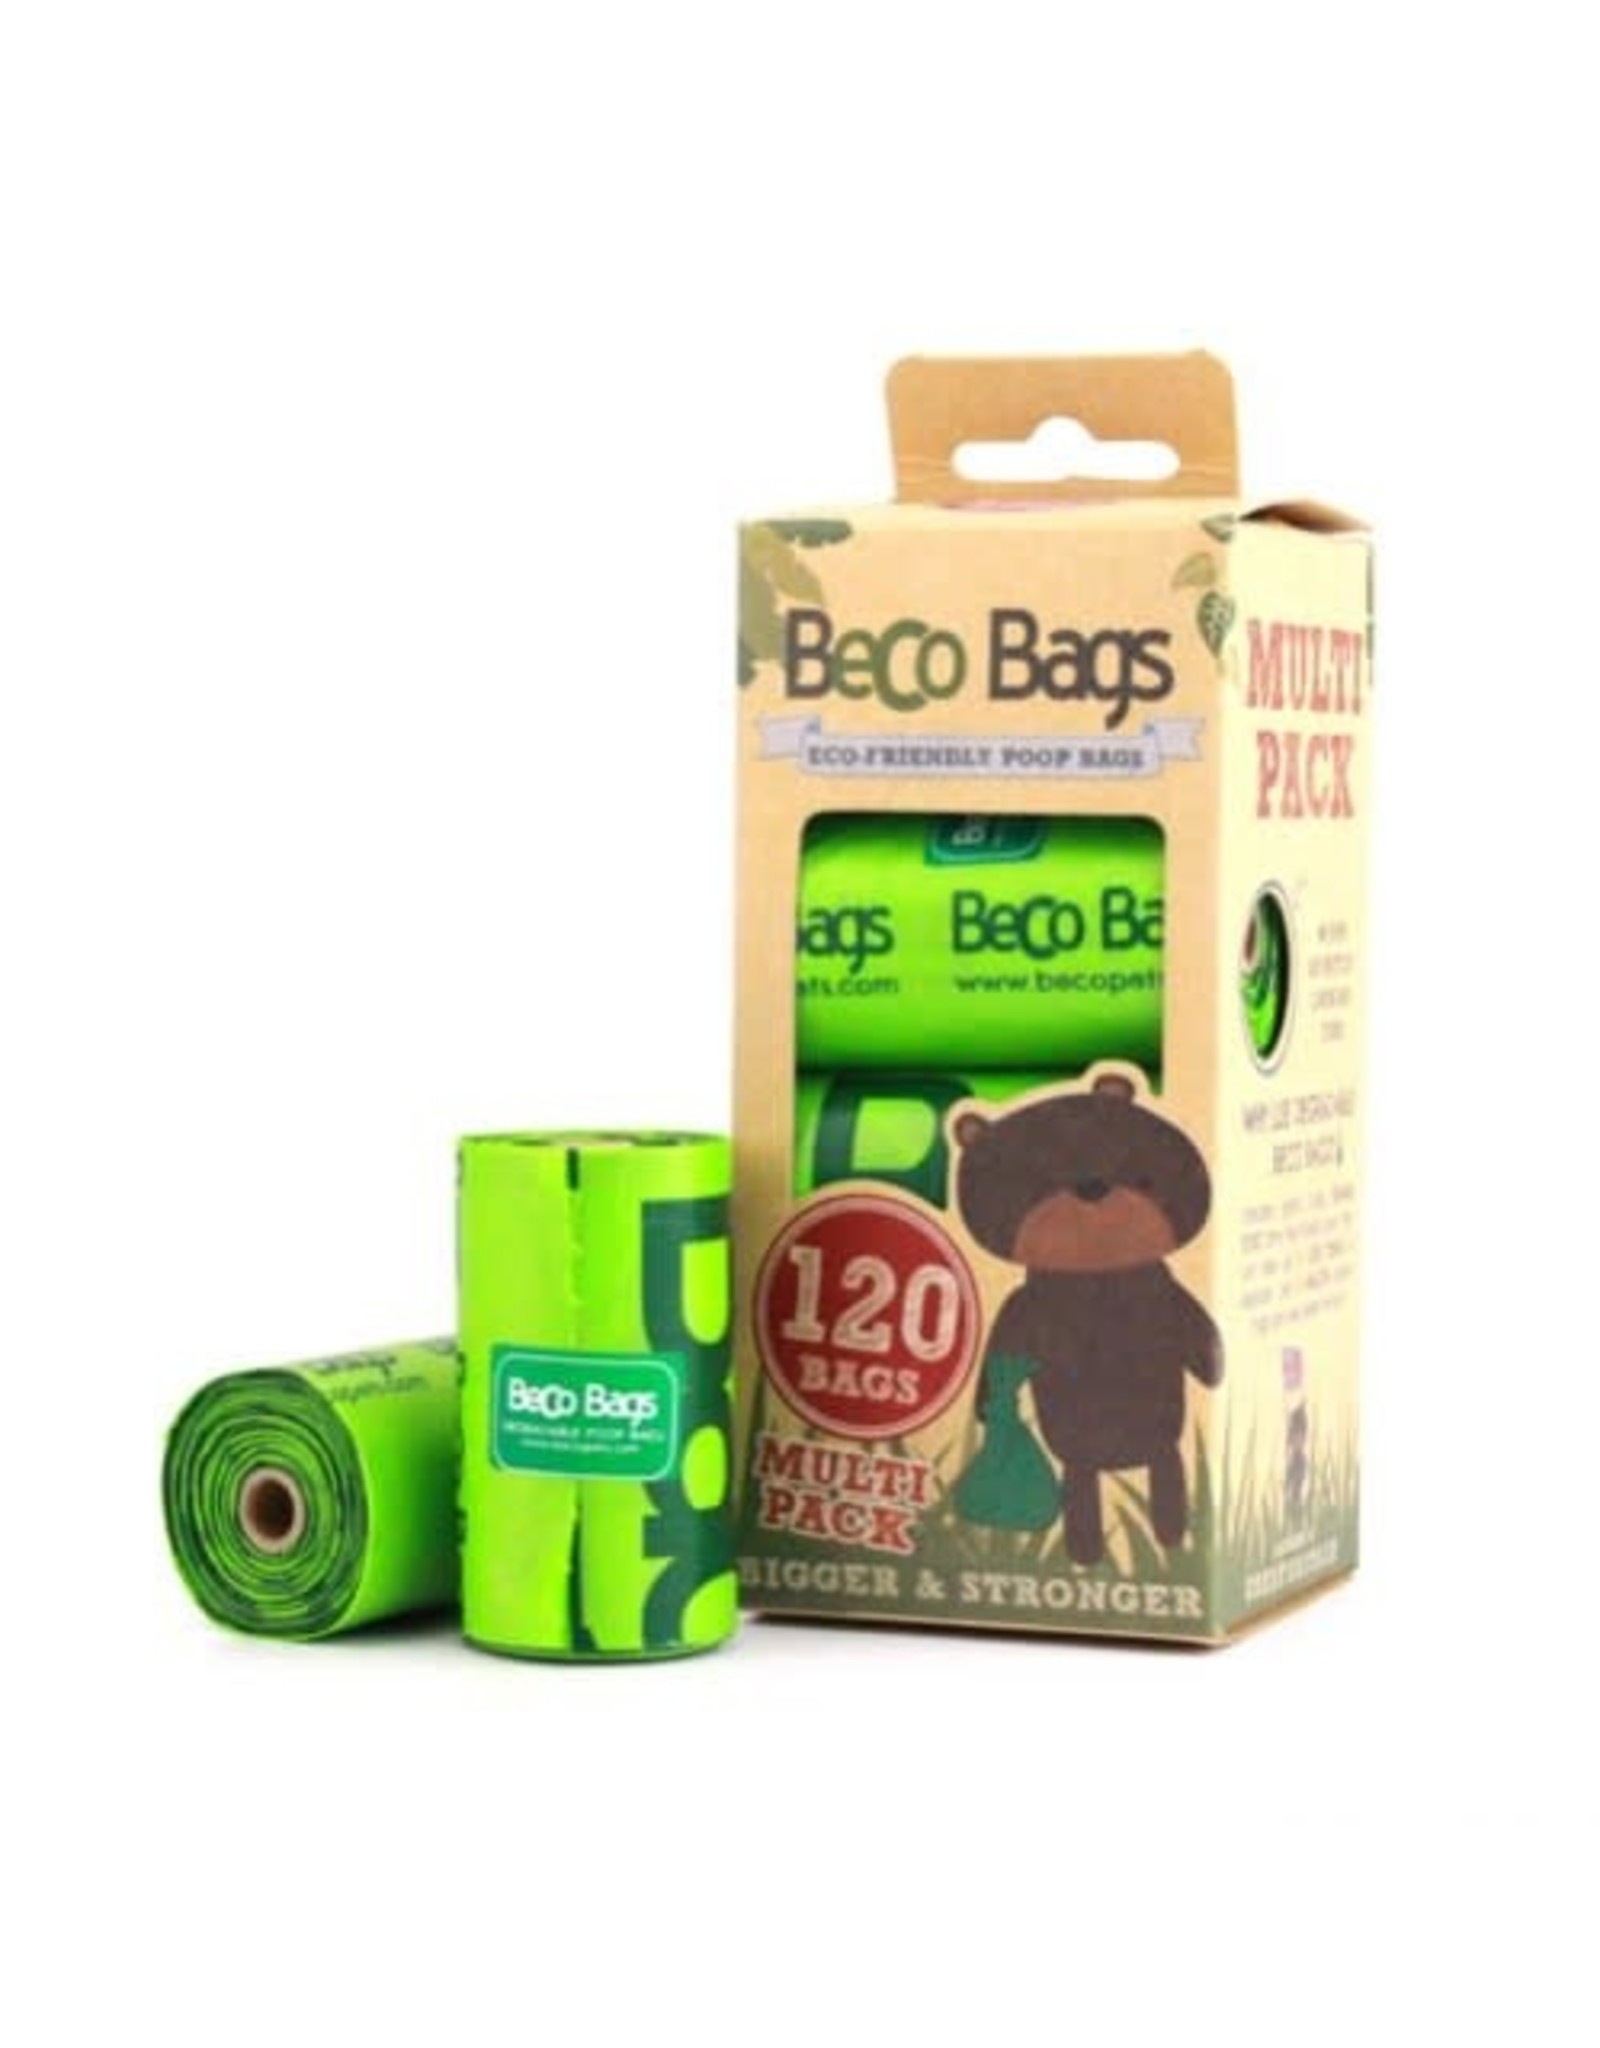 Beco Bags - Travel Pack 60bags